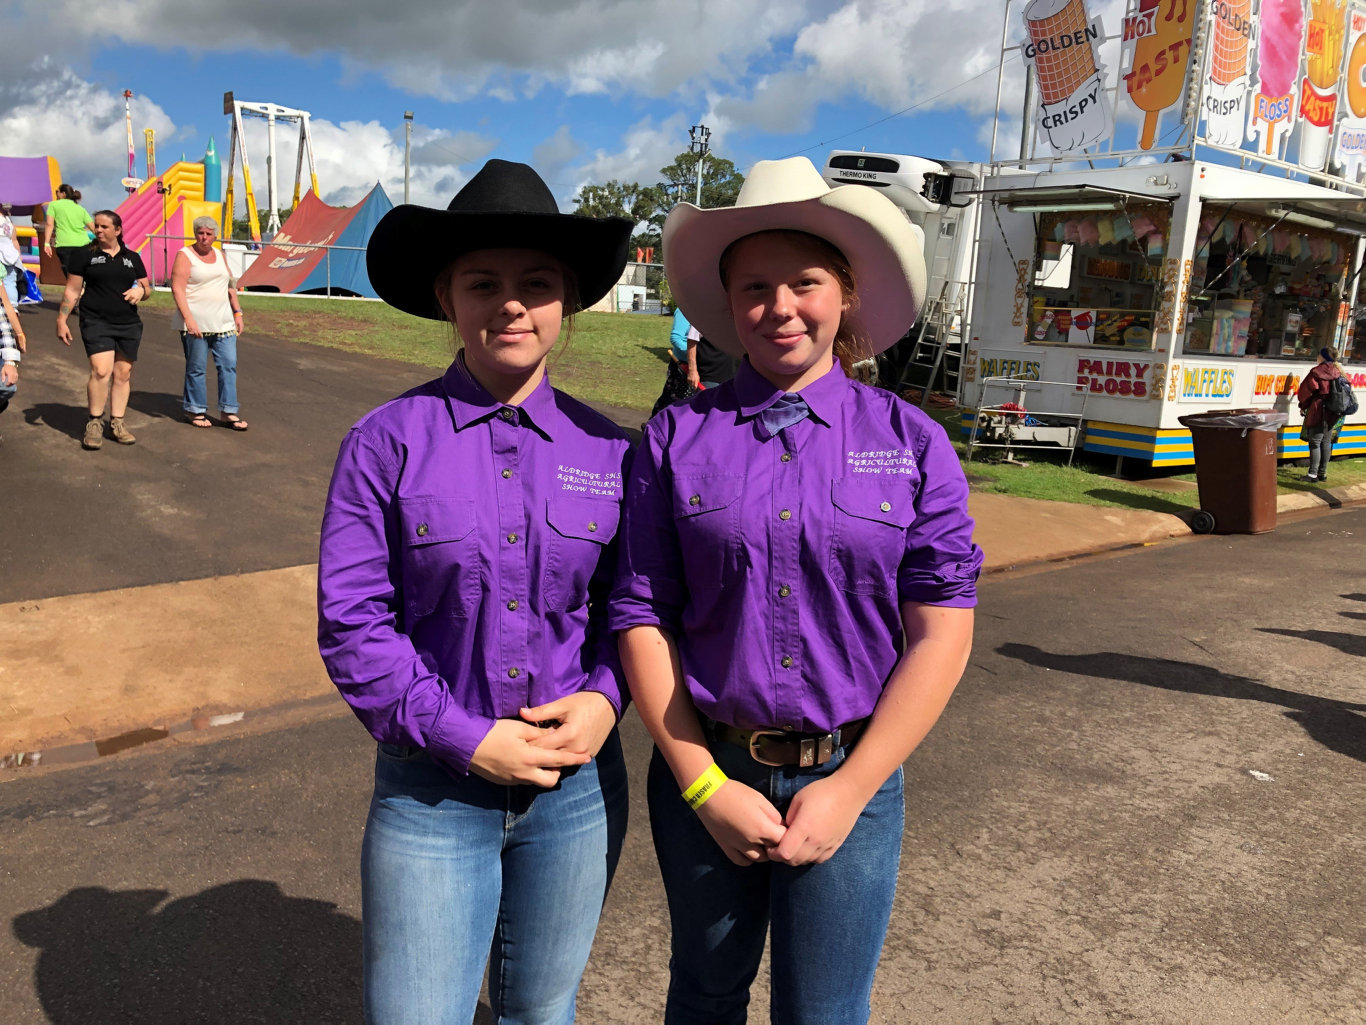 Taylor Kolibaum and Taijha Reeves from Aldridge State High School were part of of the cattle team at the show, taking part in the junior judging and handling.